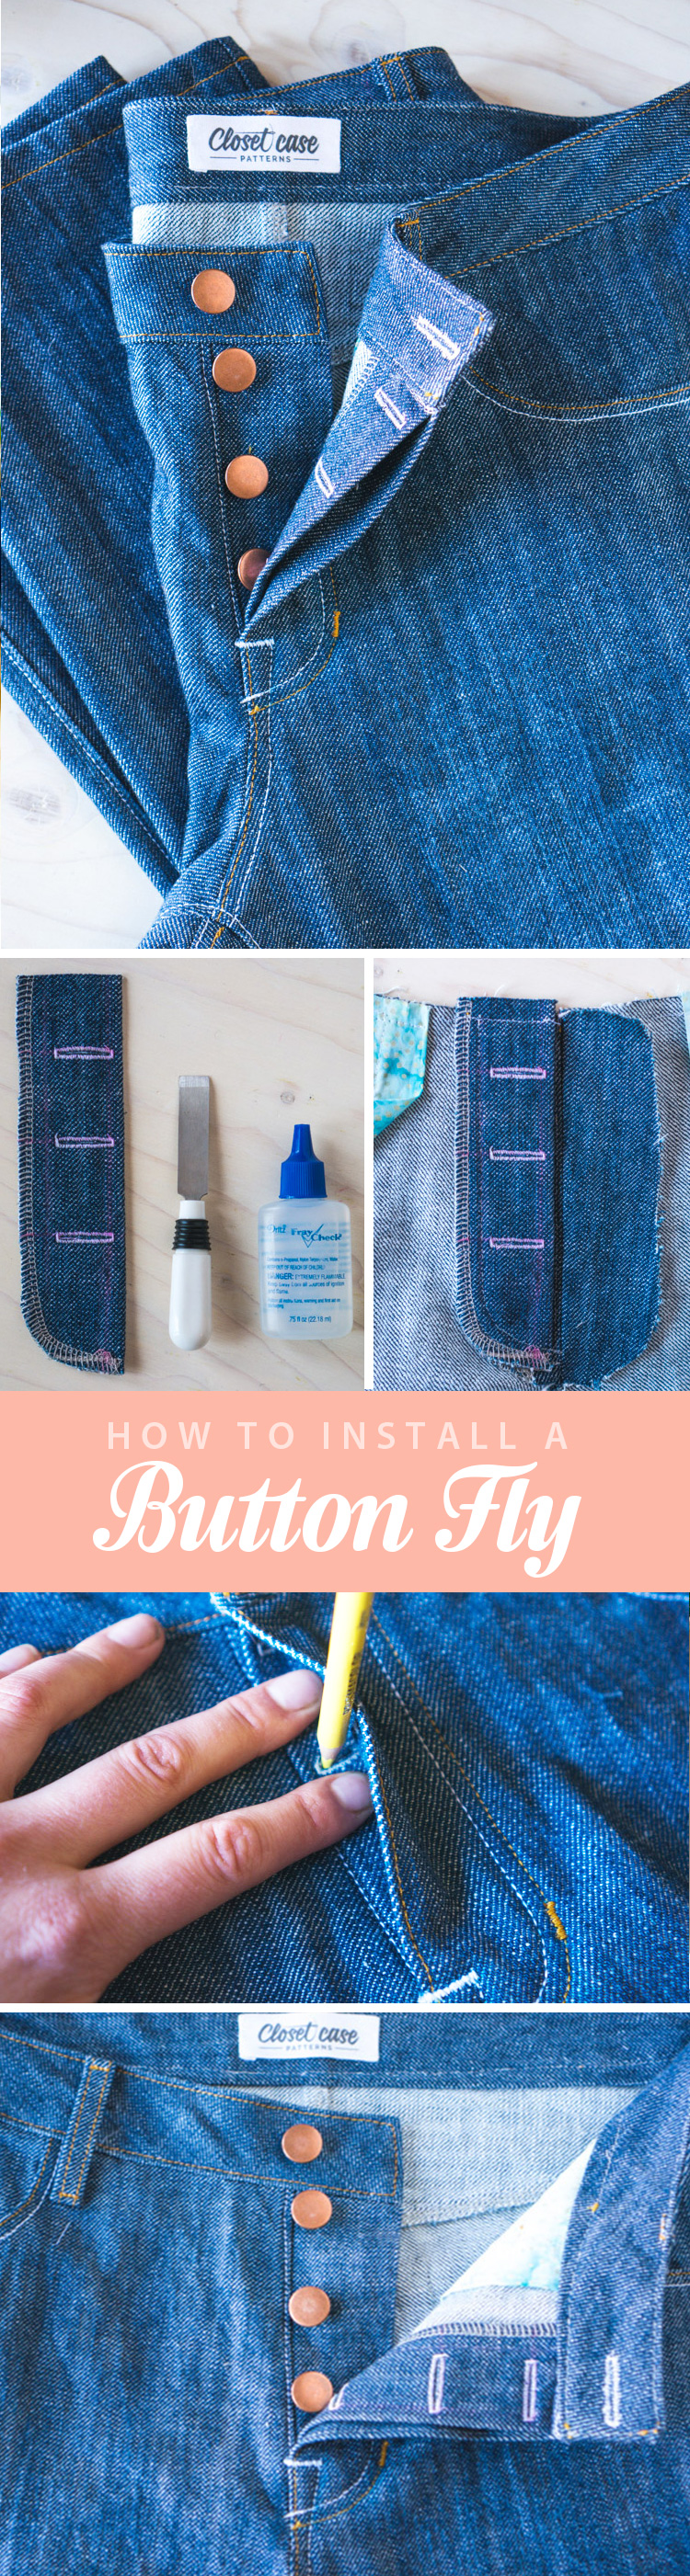 How-to-install-and-sew-a-button-fly